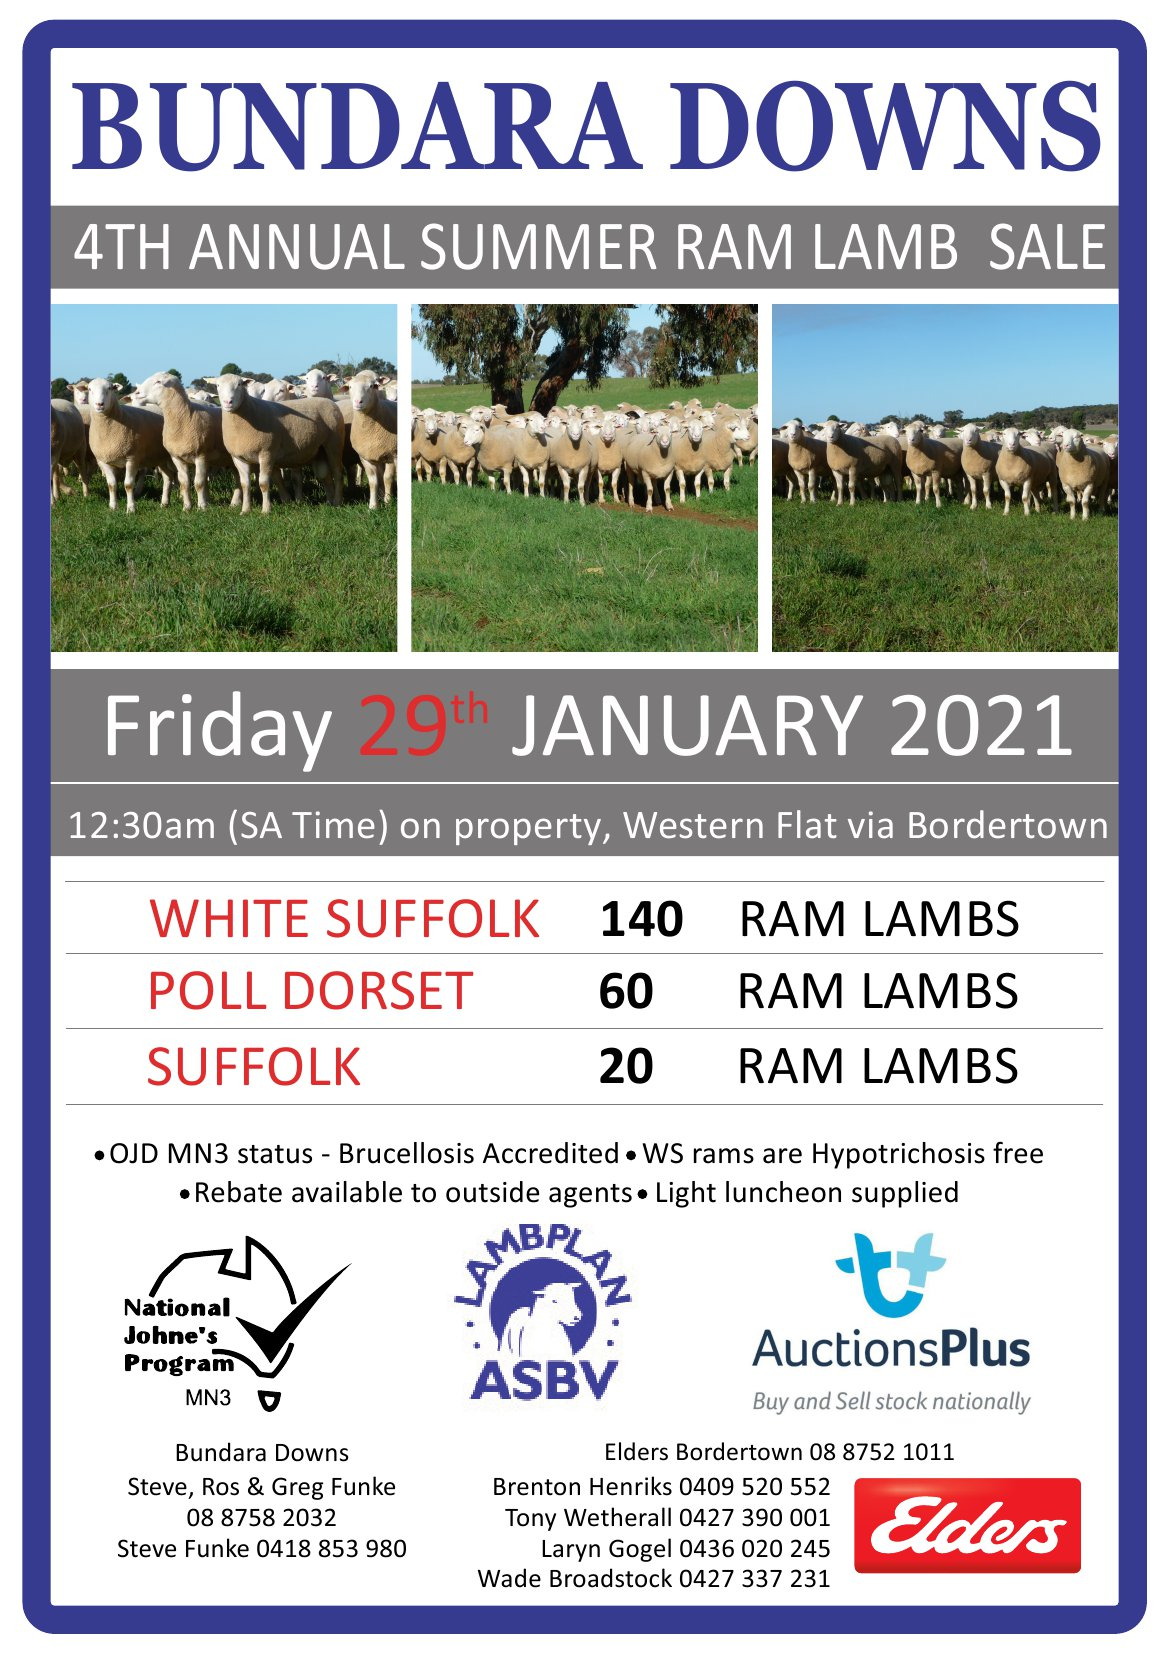 2020 Annual Summer Ram Lamb Sale